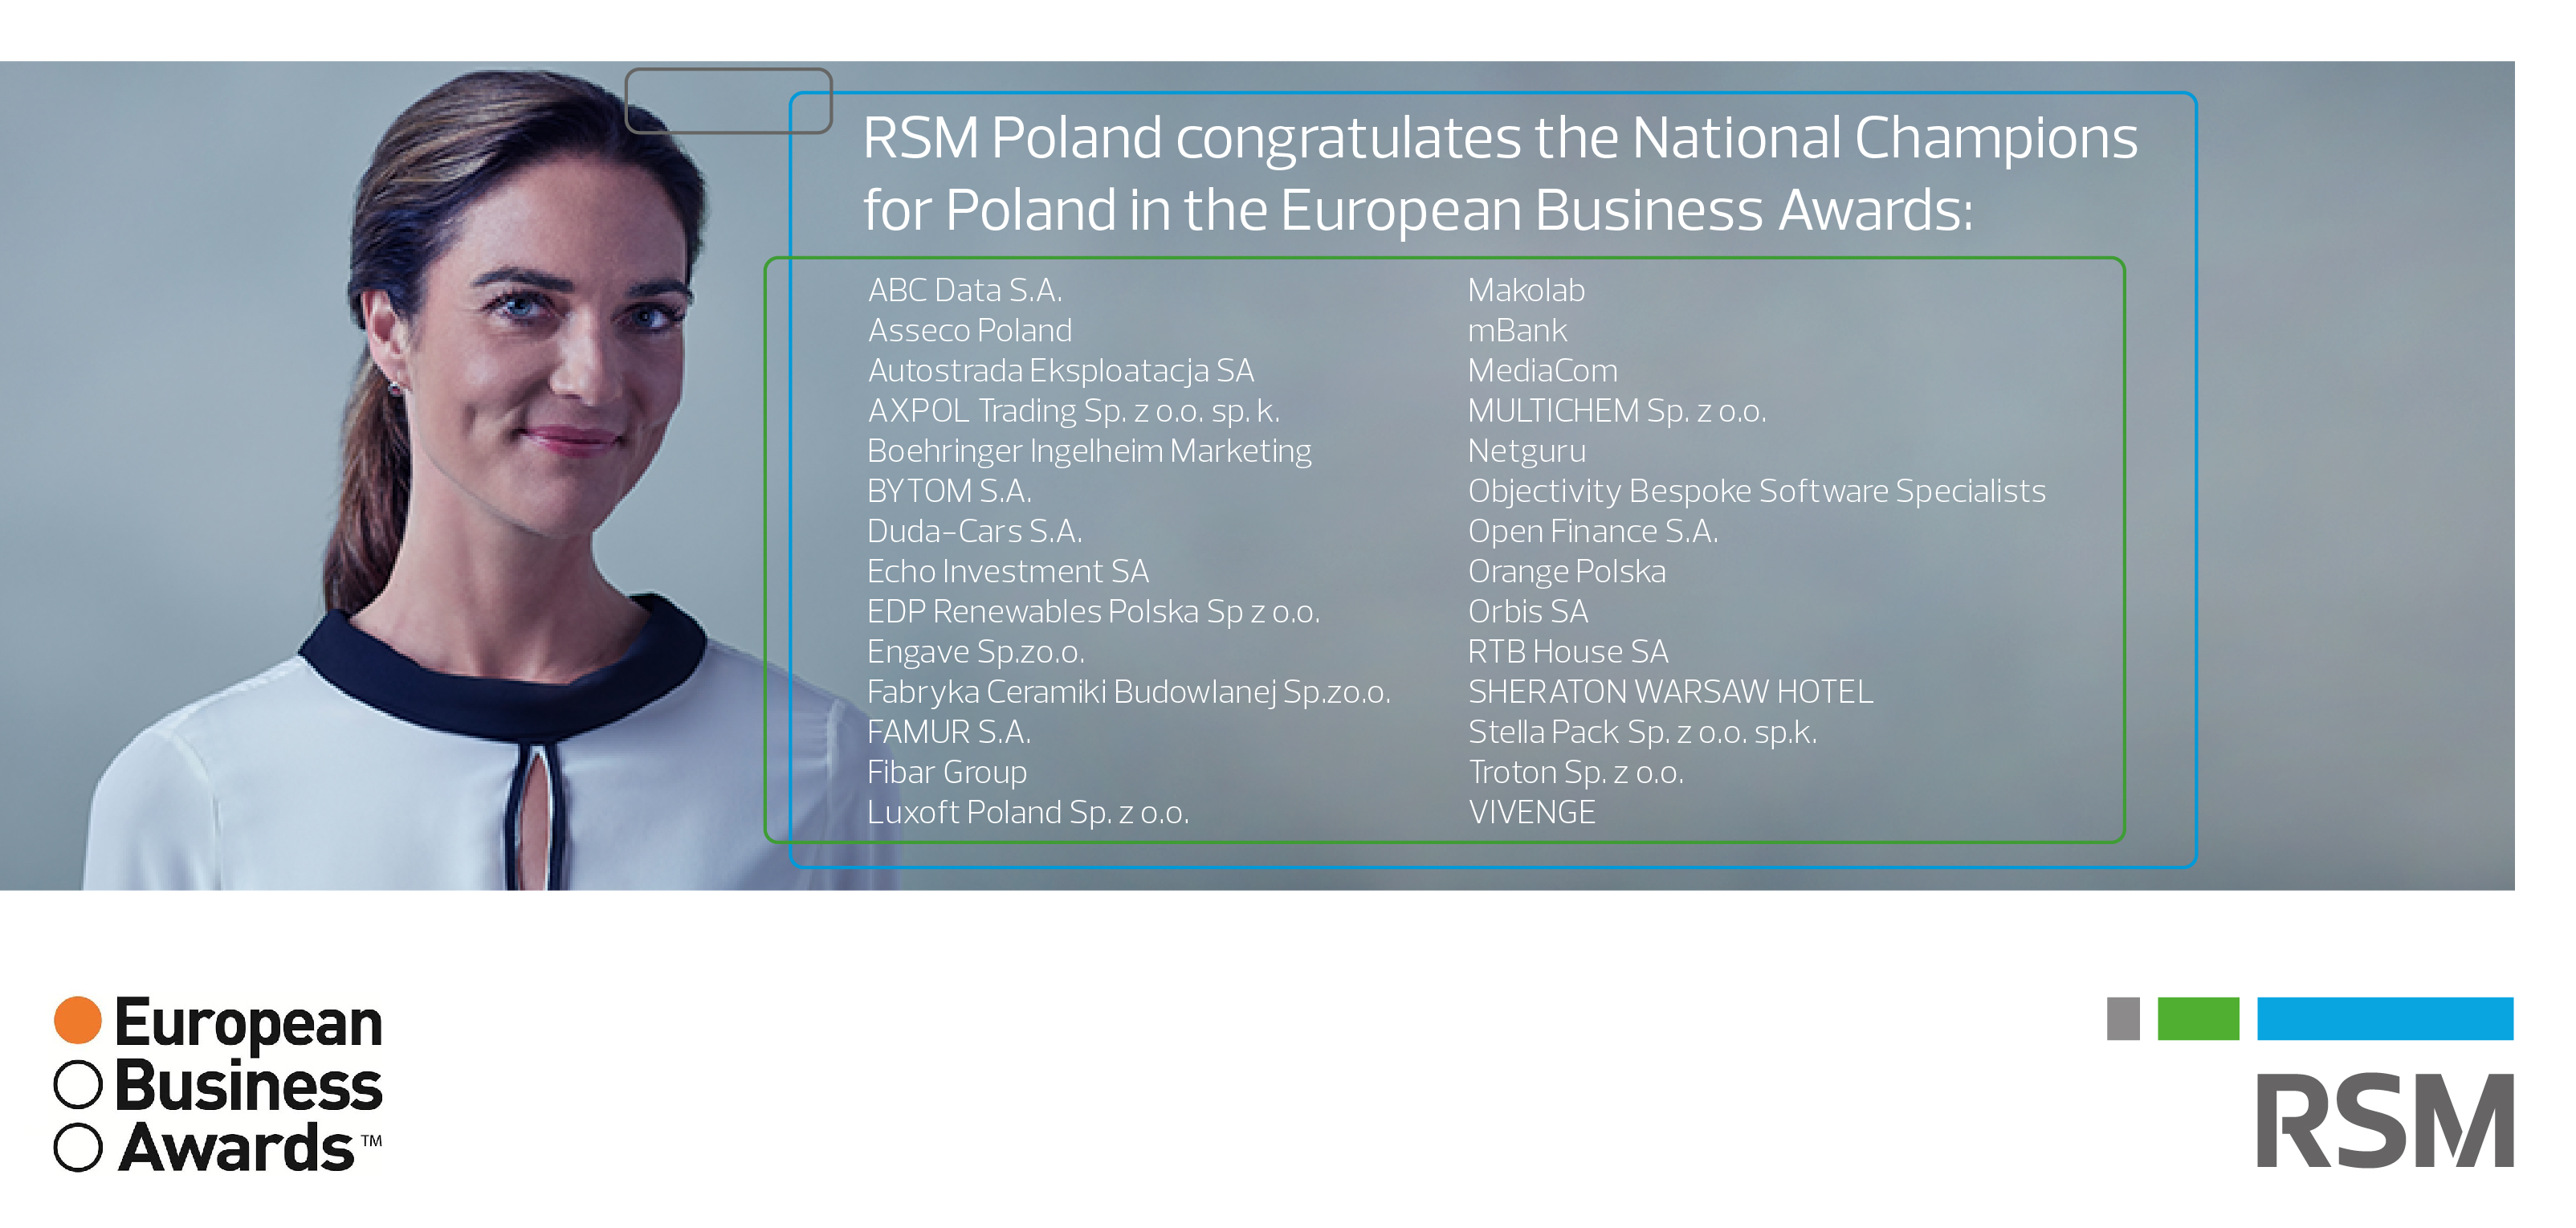 European Business Awards 2016/17 Poland